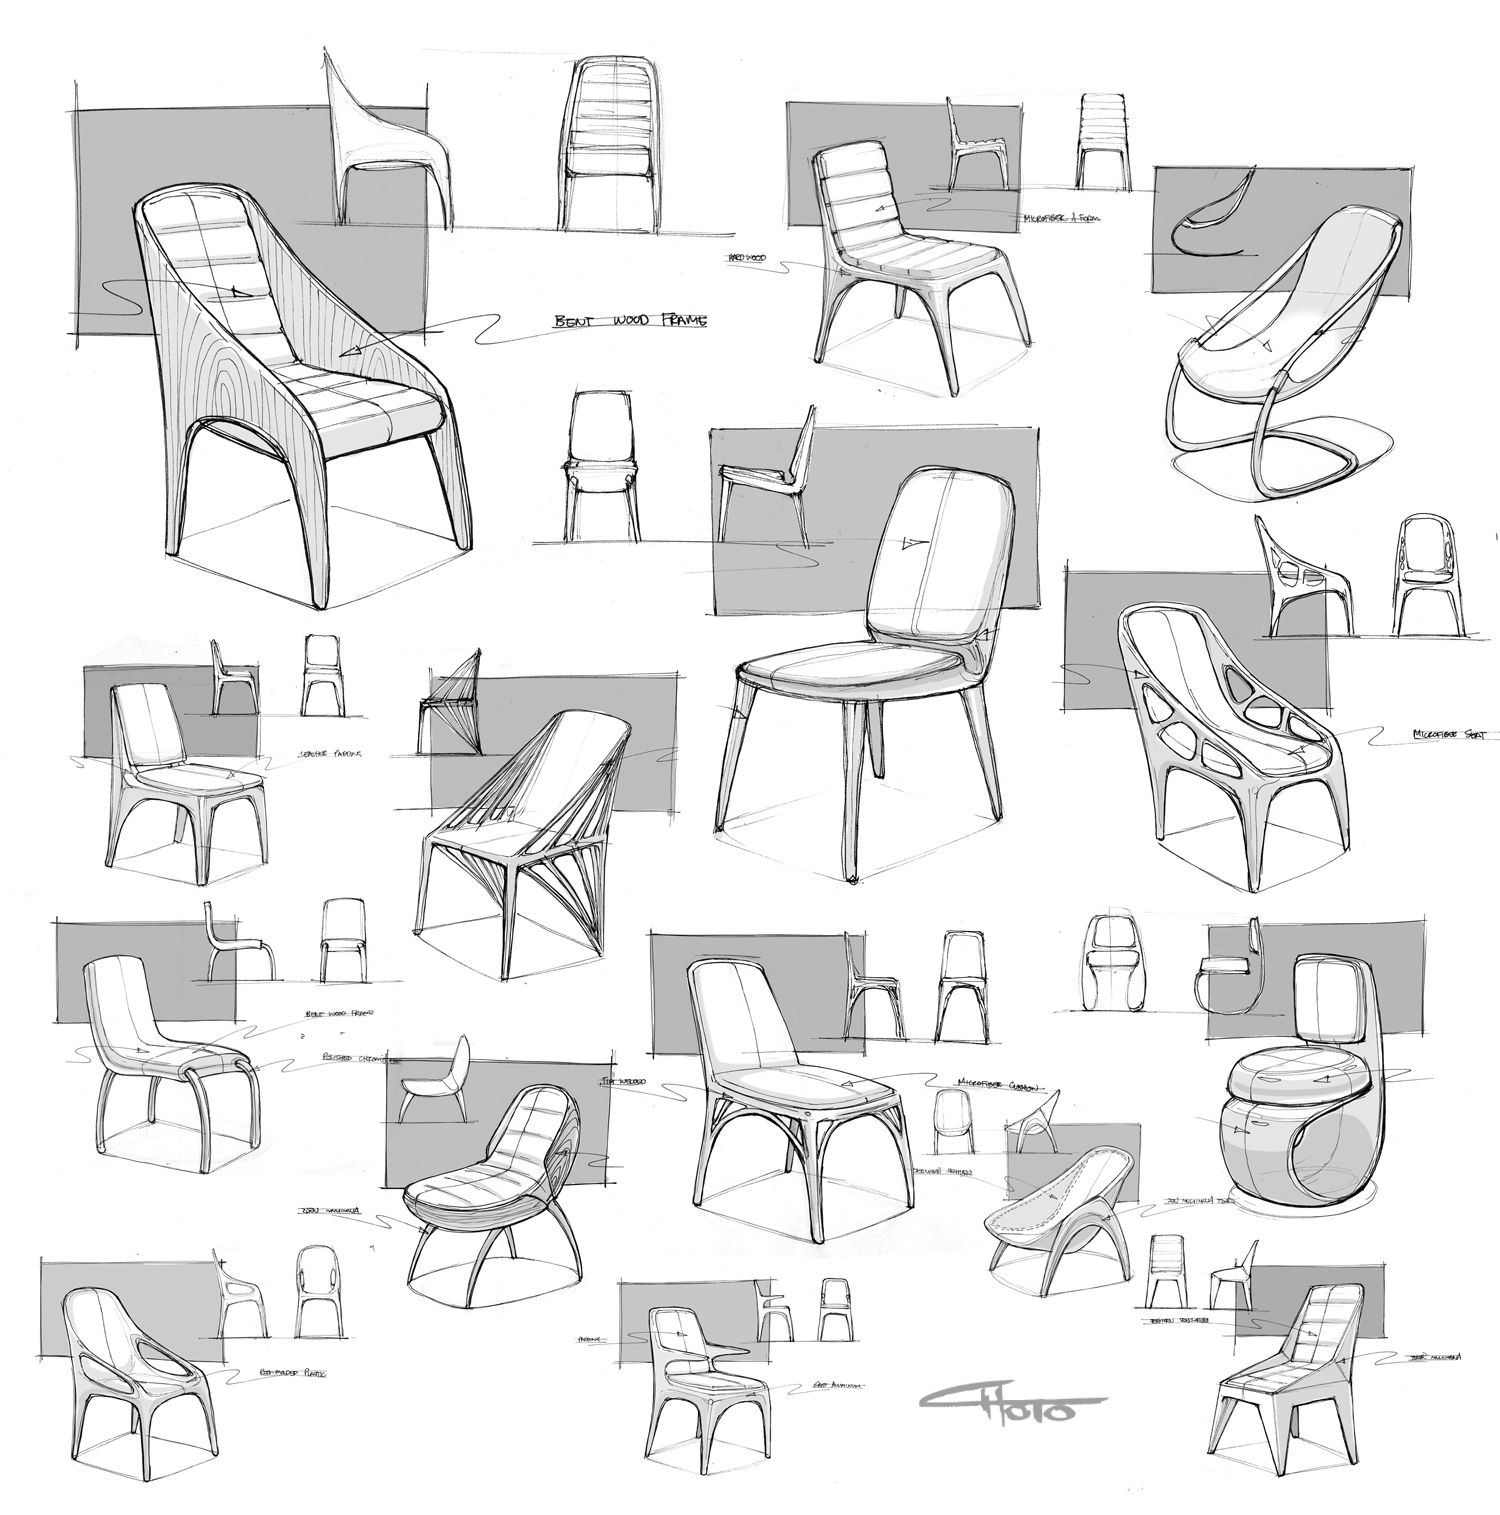 Modern furniture sketches chair sketches - Stroller Sketch From Instagram Matthew Choto Chair Designfurniture